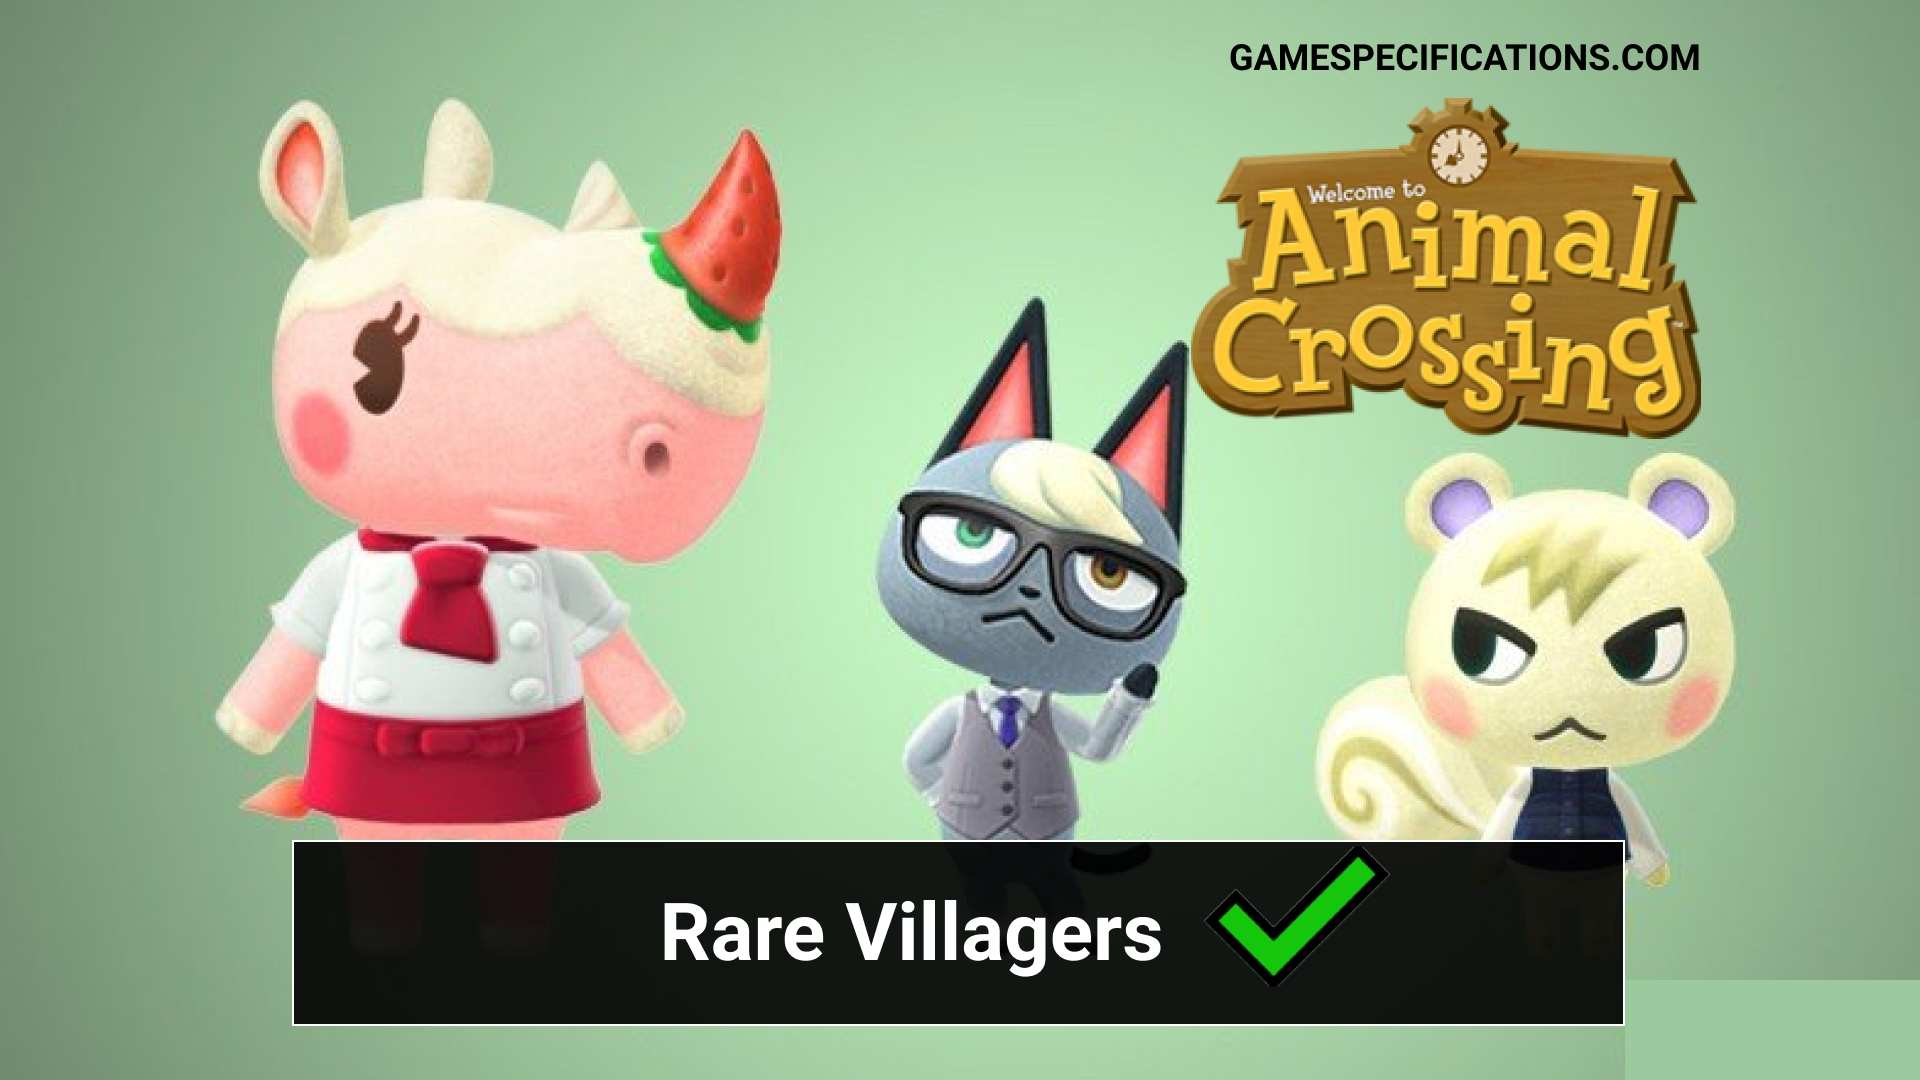 Top 20 Animal Crossing Rare Villagers Game Specifications